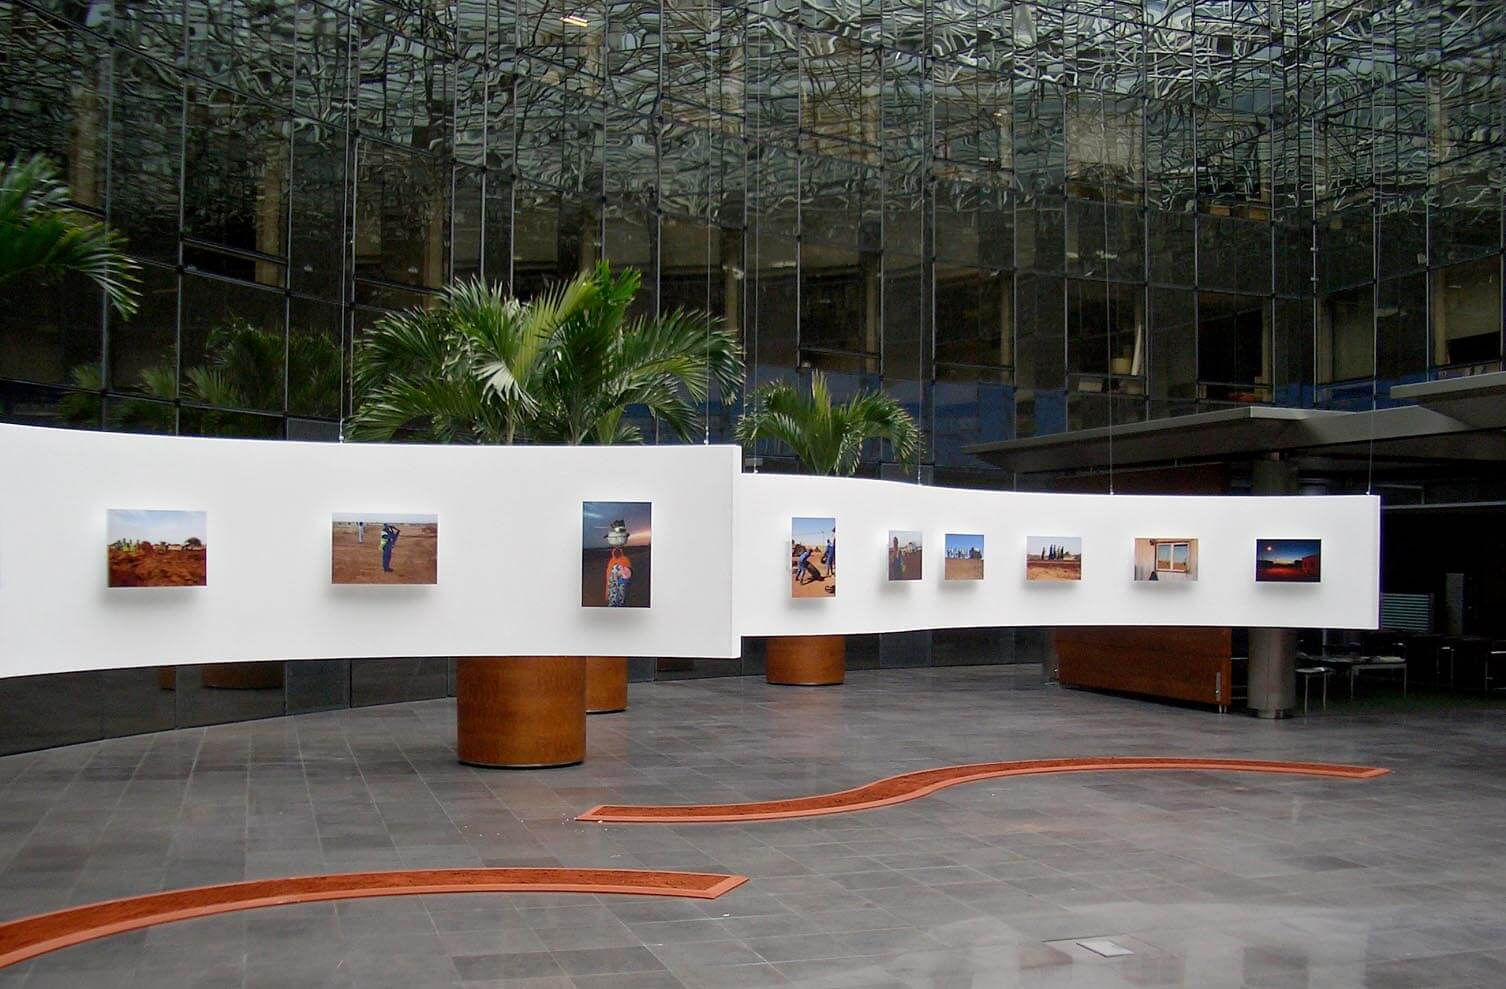 Image Expositions groupe Vinci 13